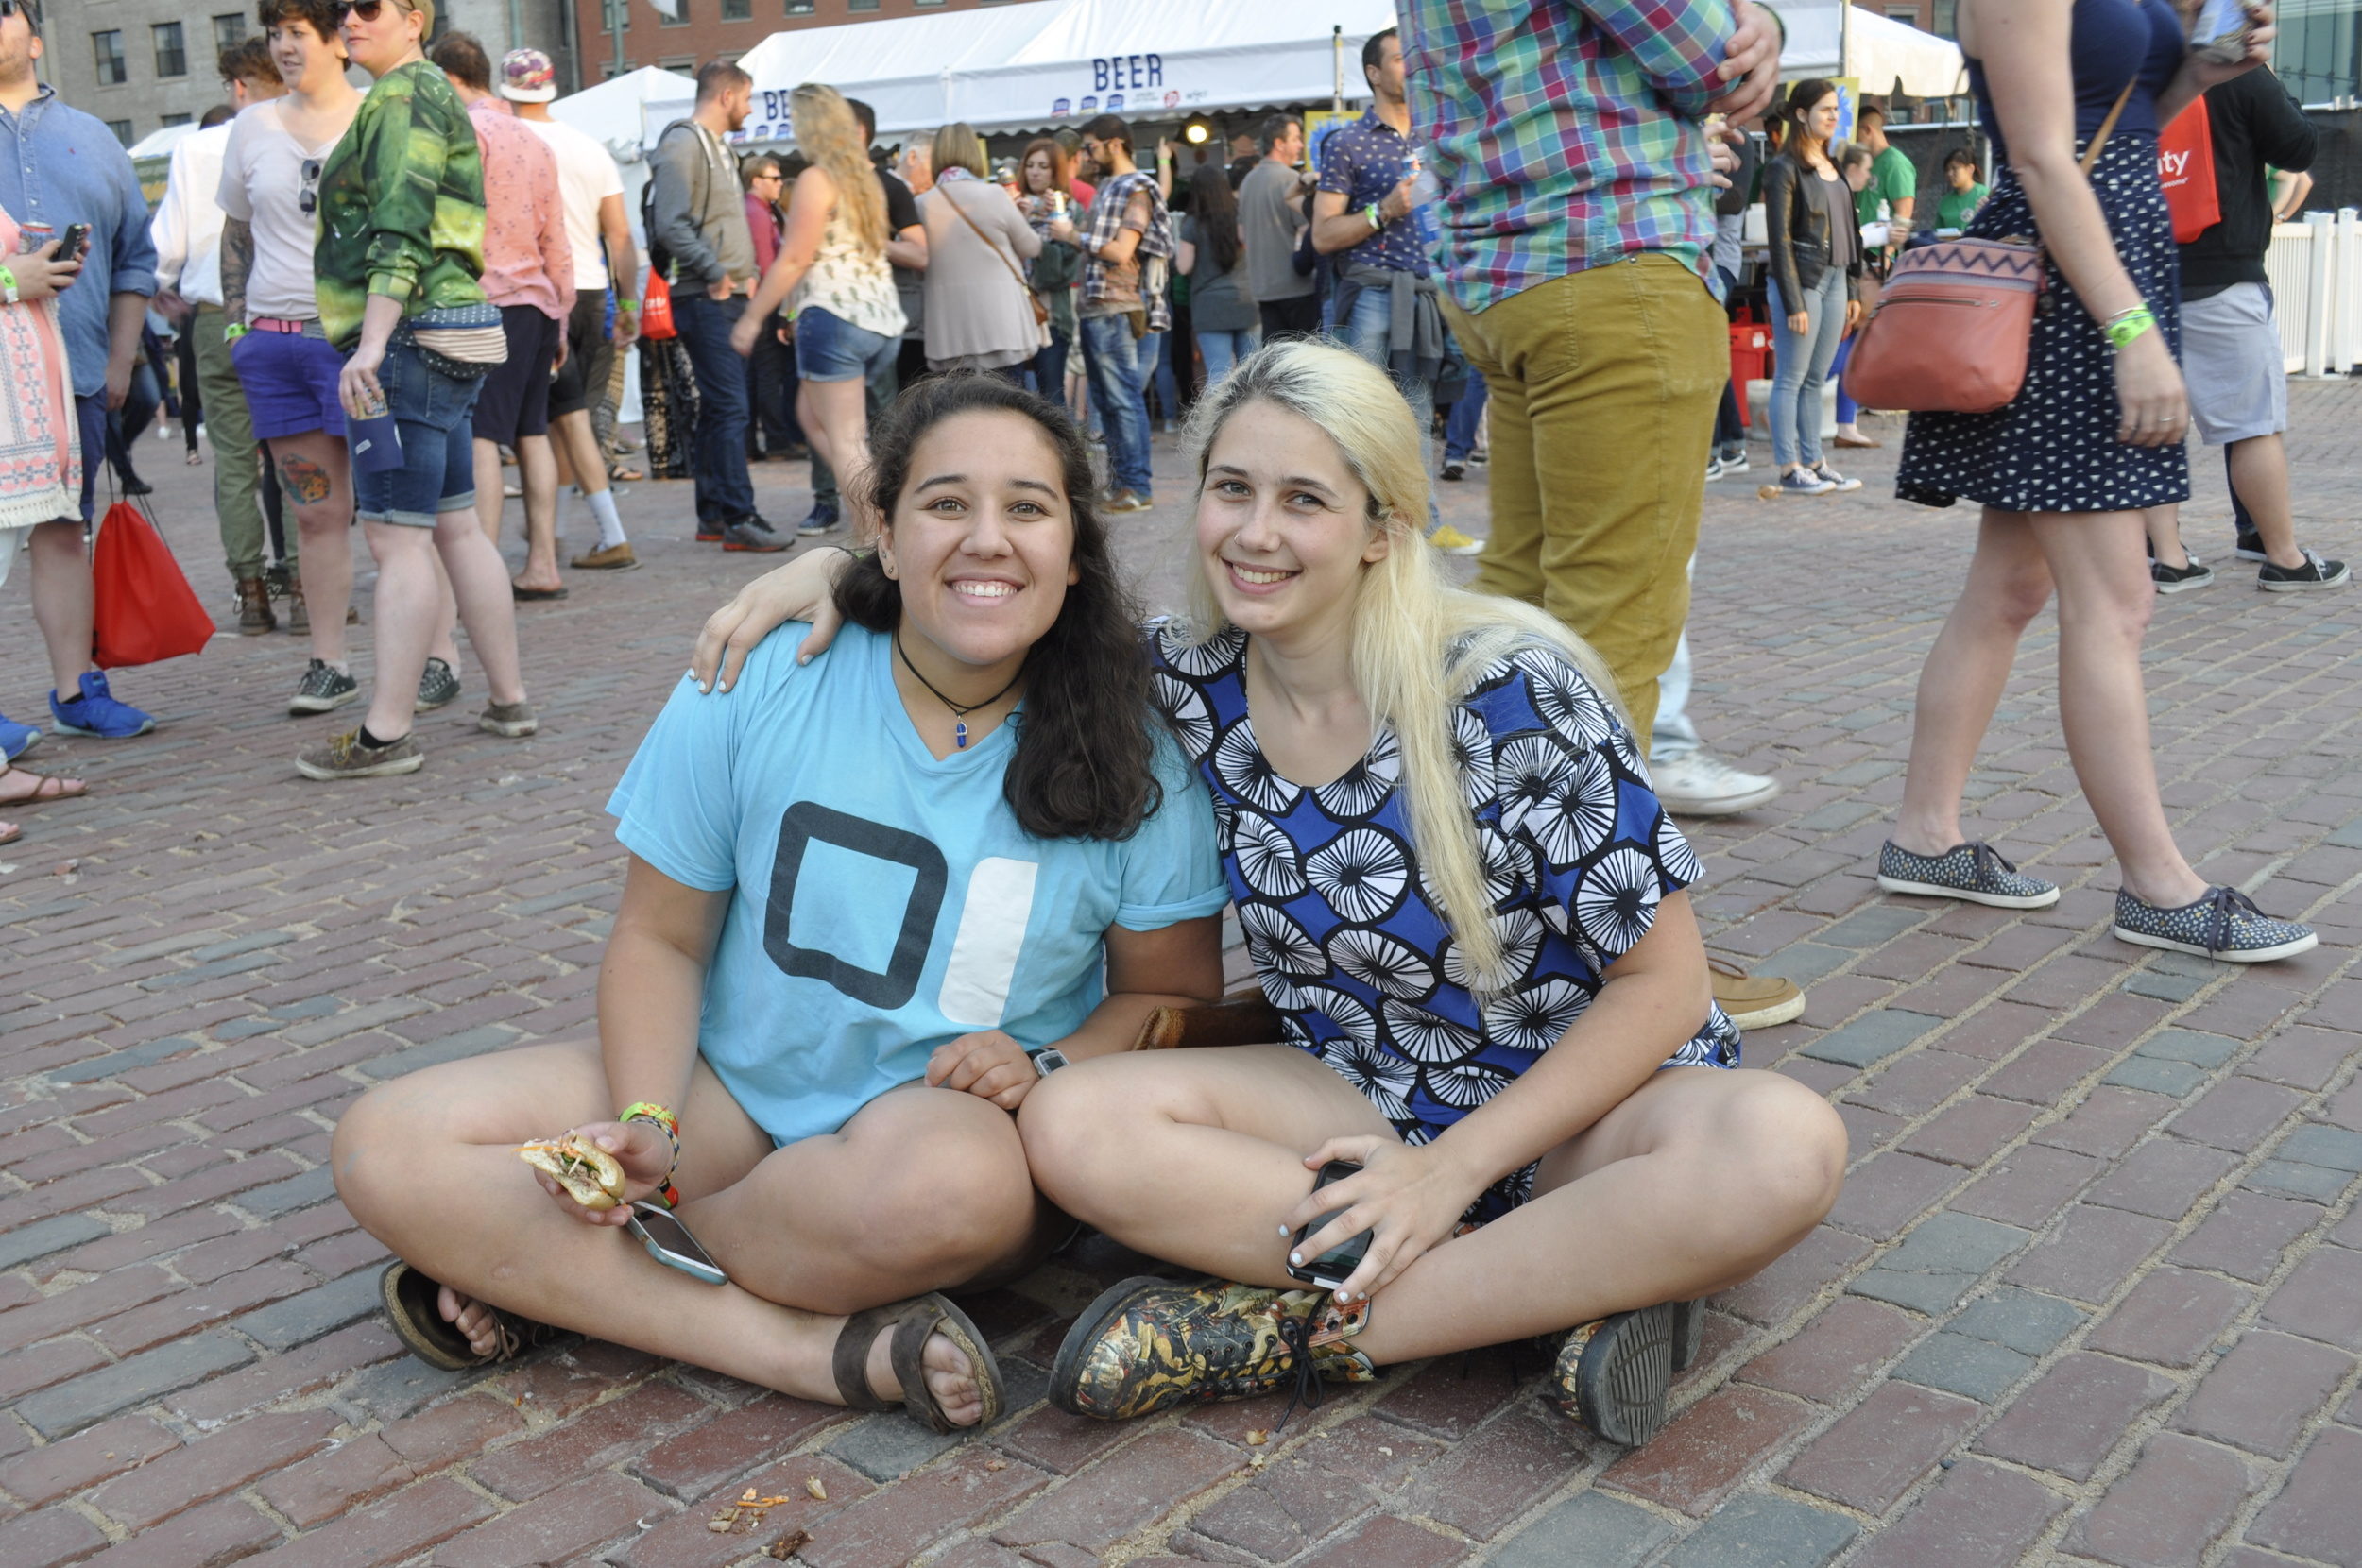 Cara Starnbach(left) and Gabi Guttormsen(right) awaiting Sufjan Stevens at the Xfinity Red Stage